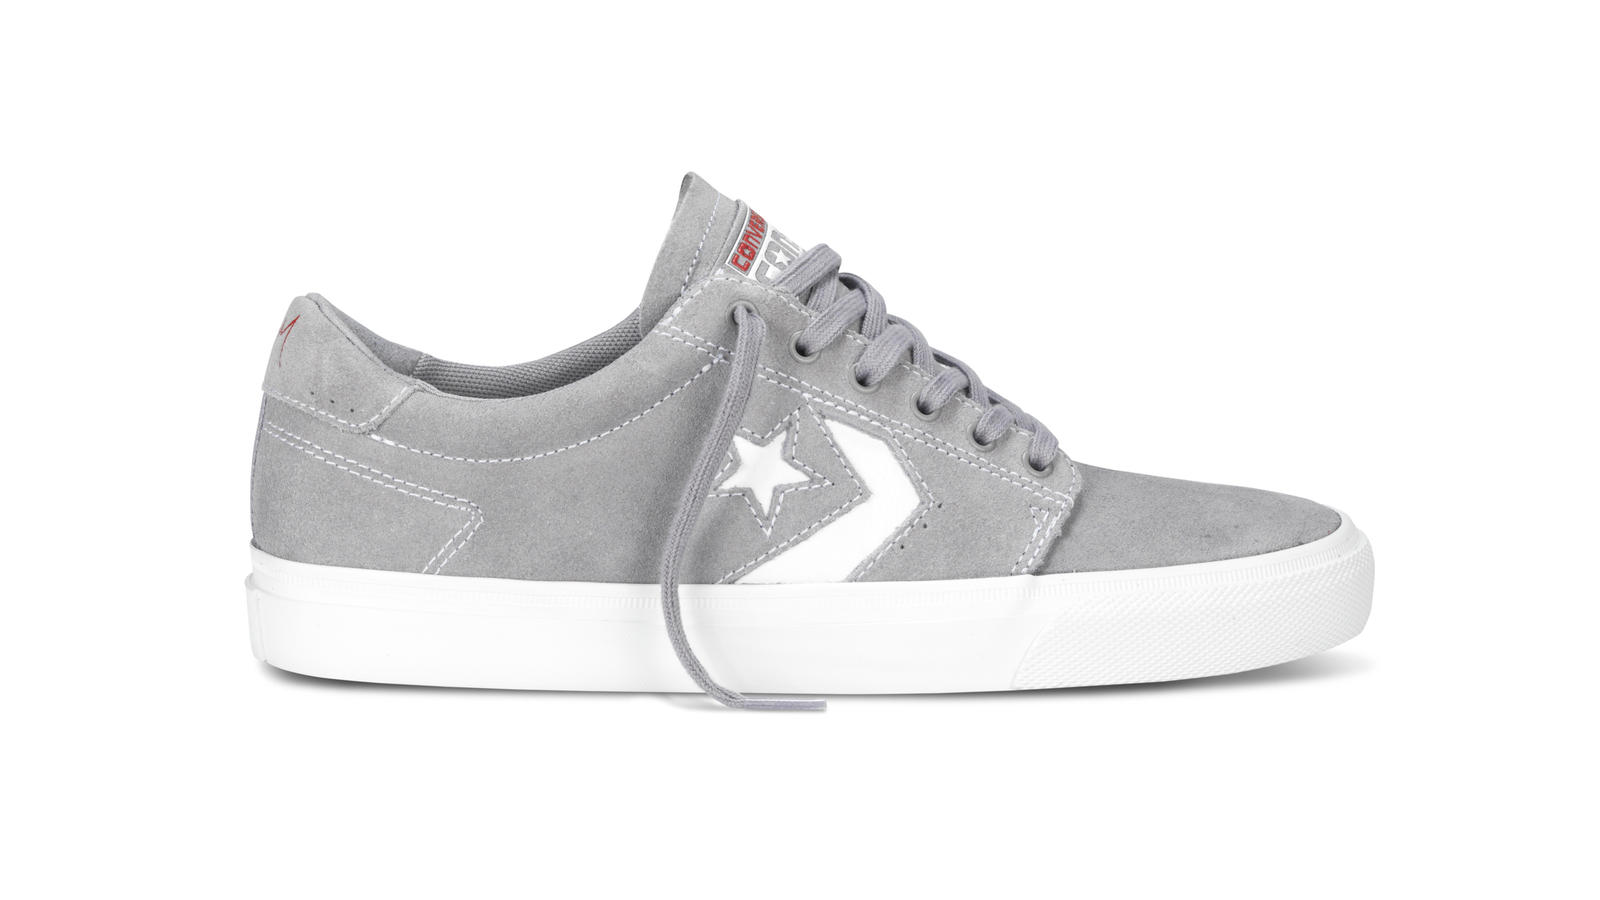 Converse CONS KA3 Canvas in White